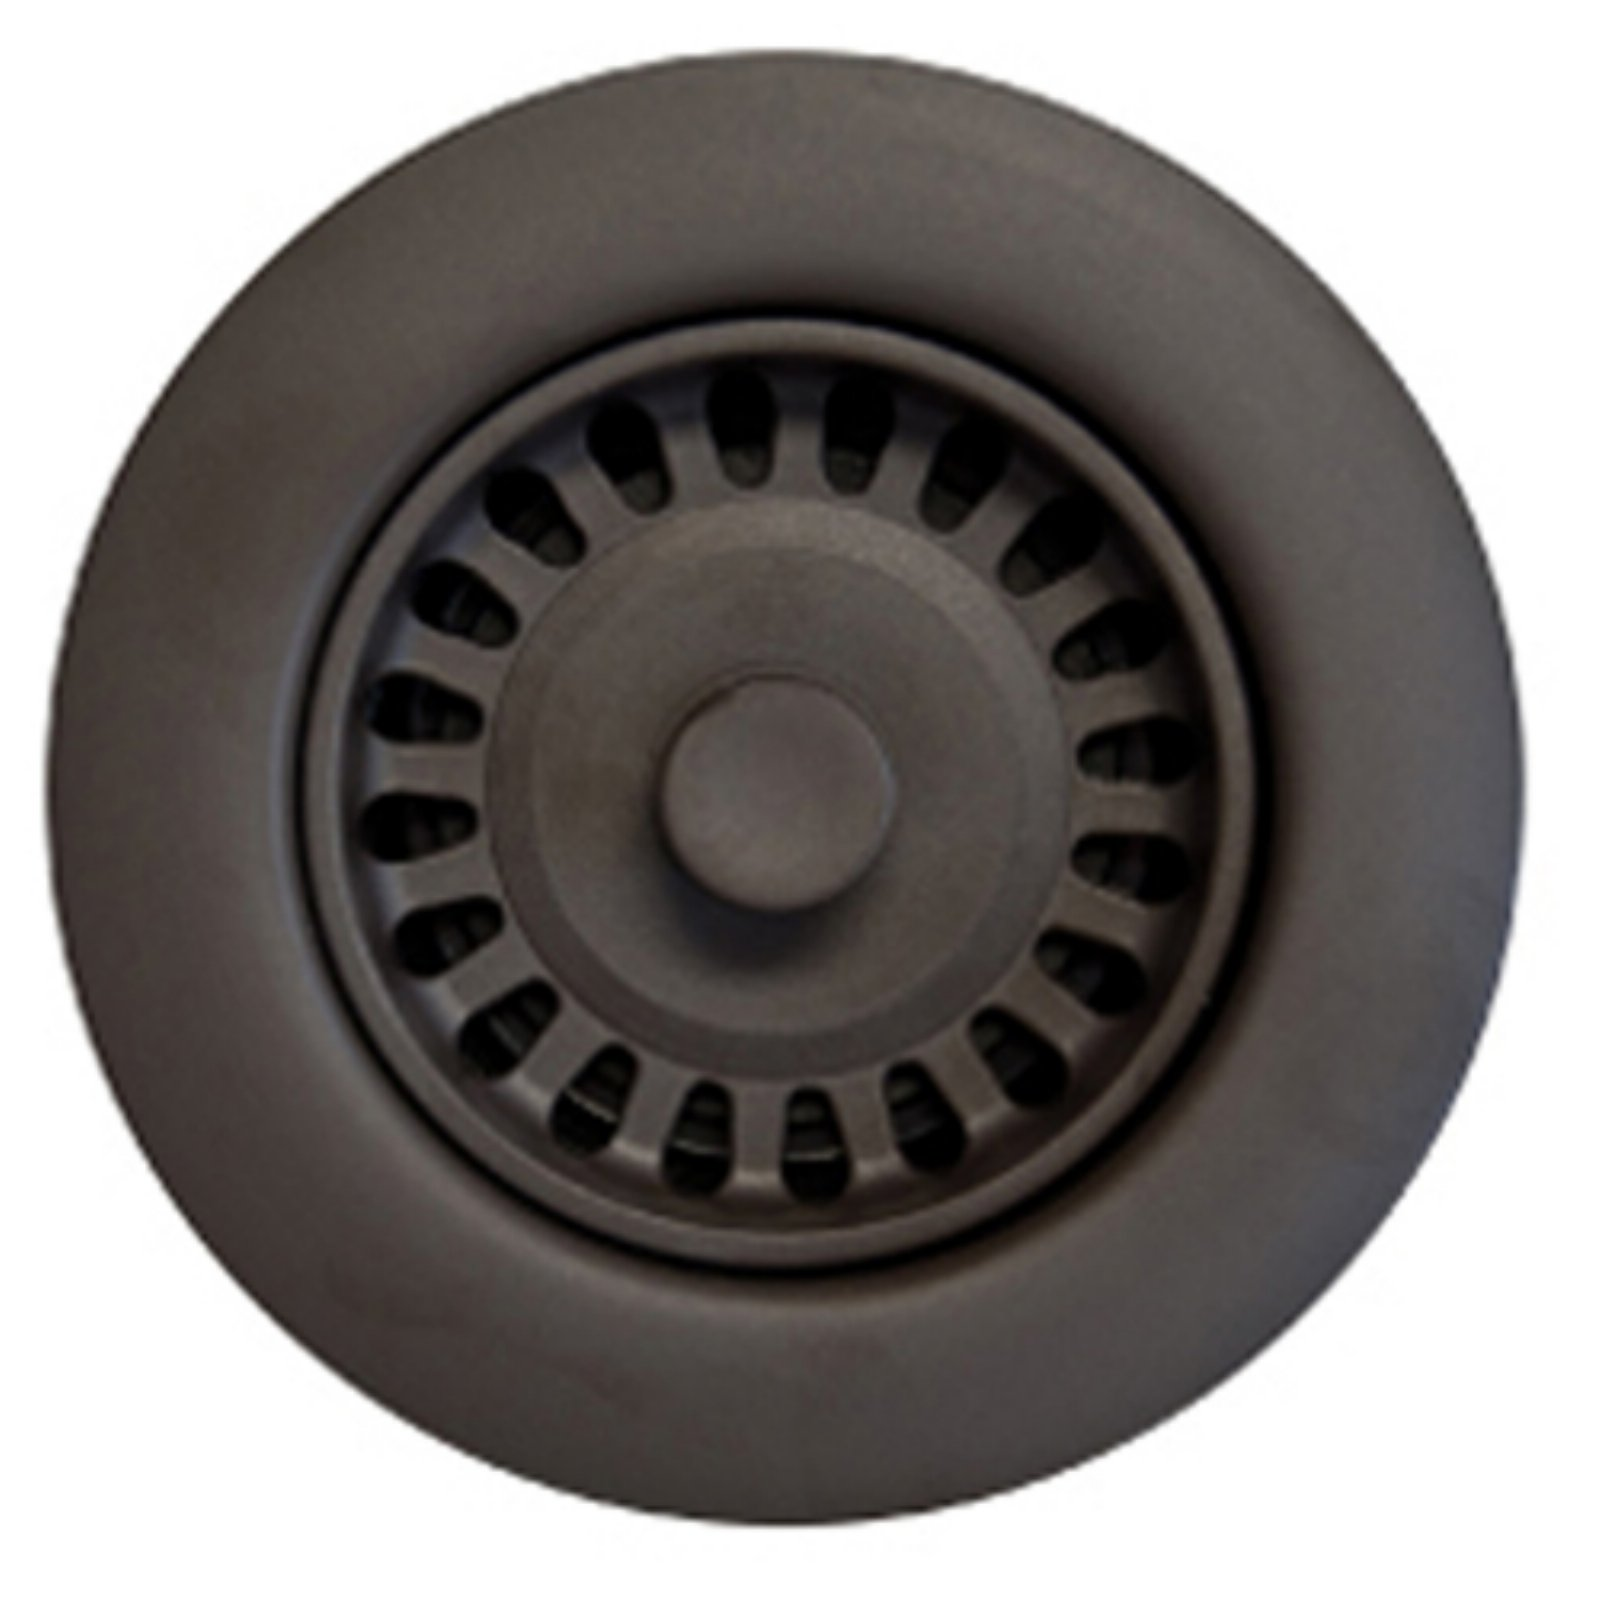 Houzer 190-9564 Disposal Flange for 3.5-Inch Drain Openings, Bronze